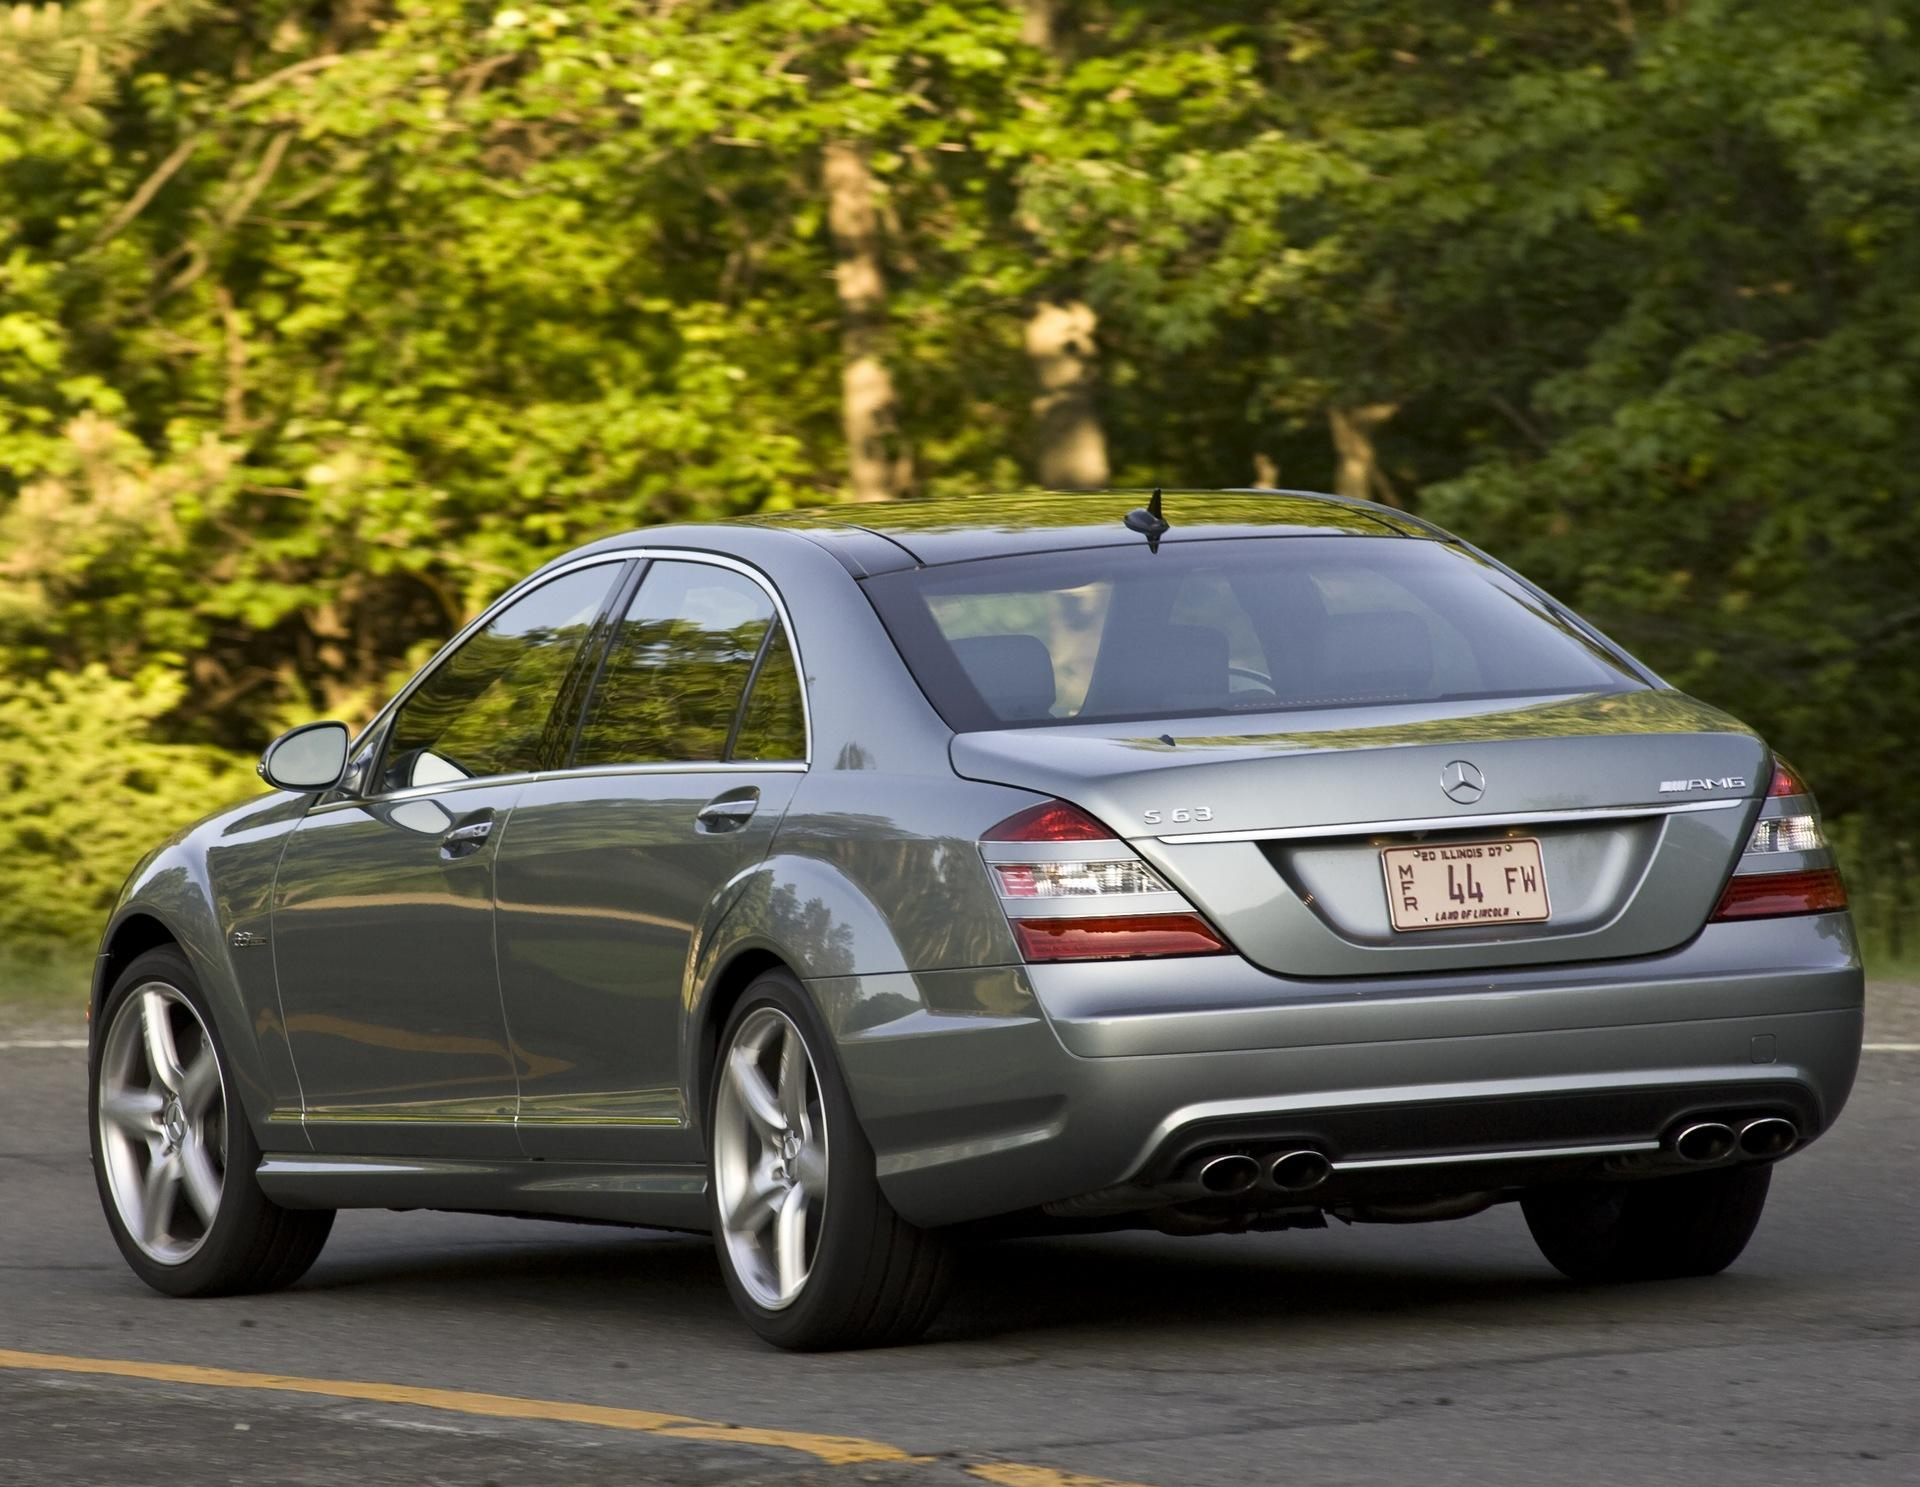 2008 mercedes benz s class image photo 74 of 83 for Mercedes benz s500 2008